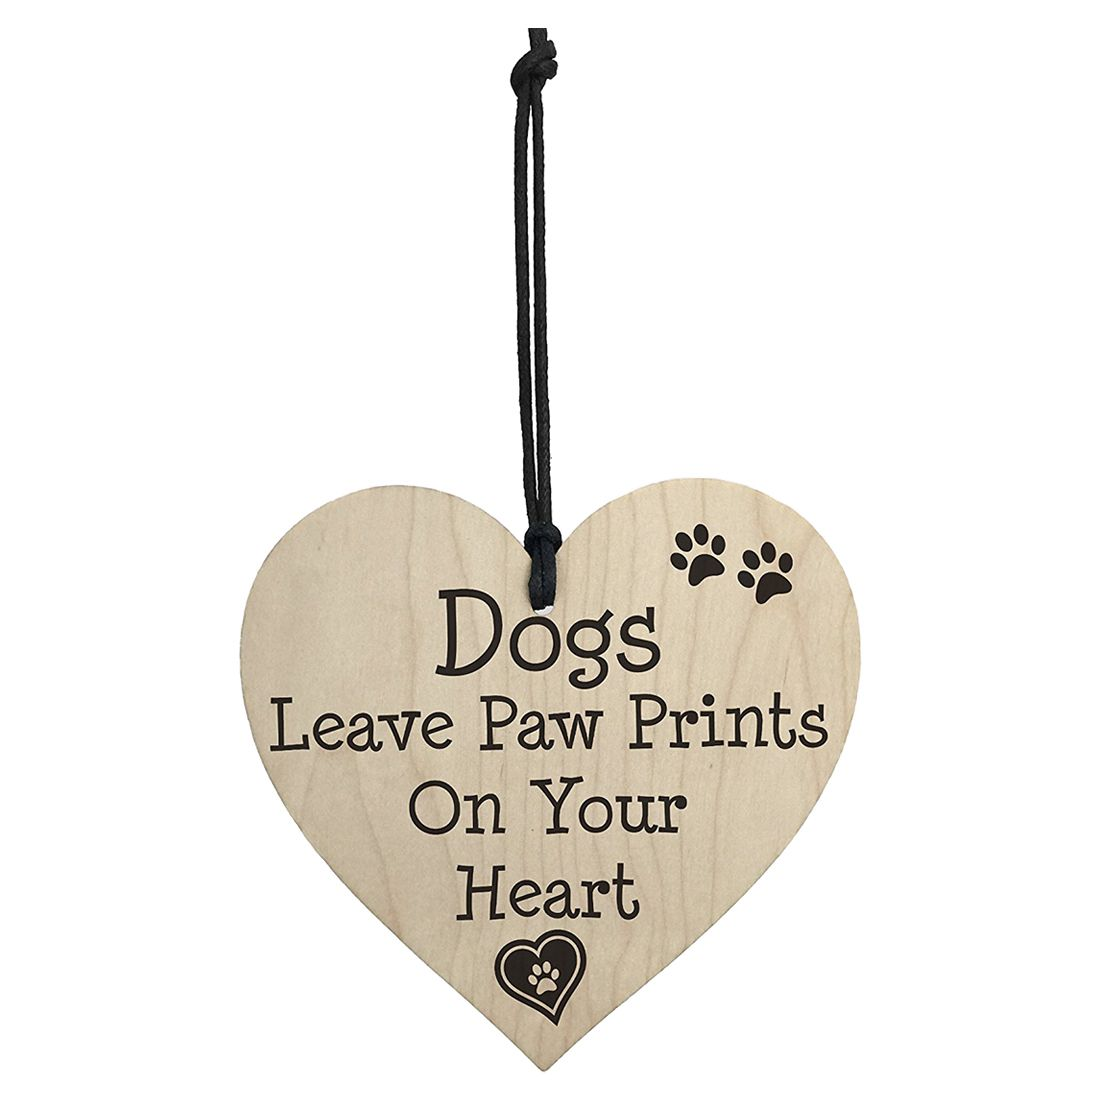 HOT SALE Dog Leave Paw Prints On Your Heart Wooden Hanging Plaque Dogs Lover Gift Sign -